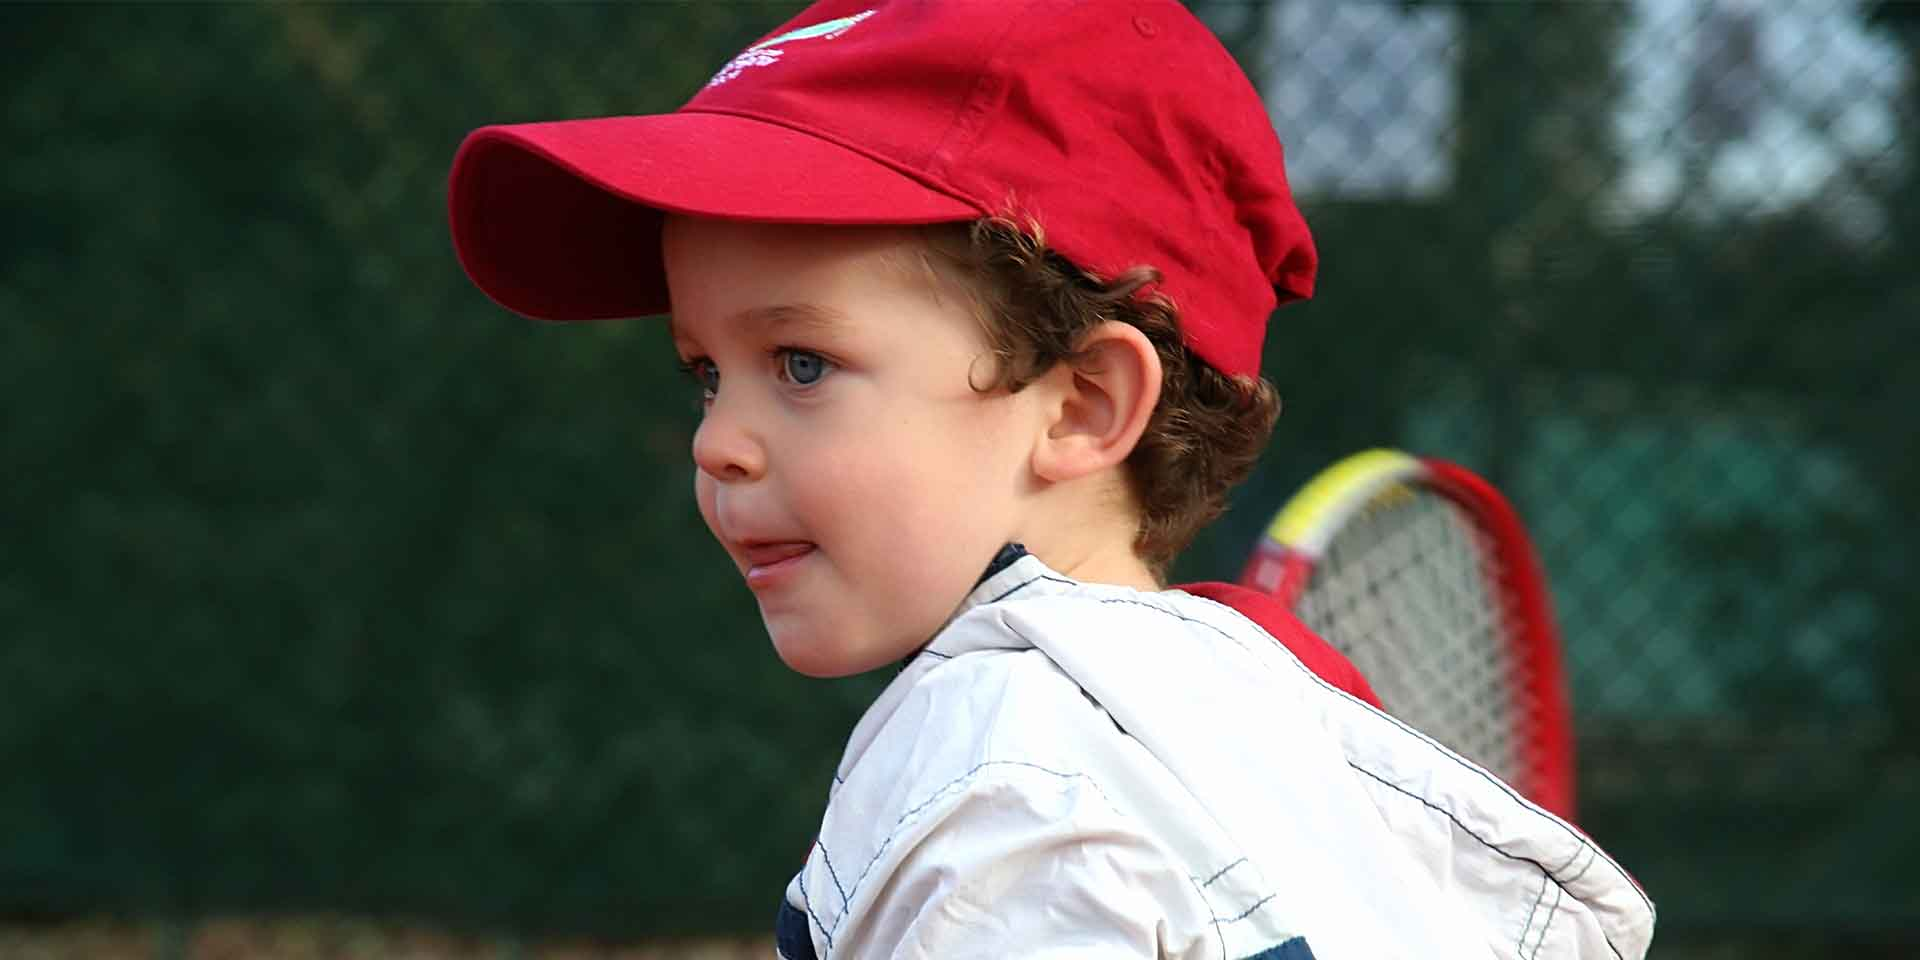 Tennis For Toddlers Teaching Toddlers Tennis Golden Ocala